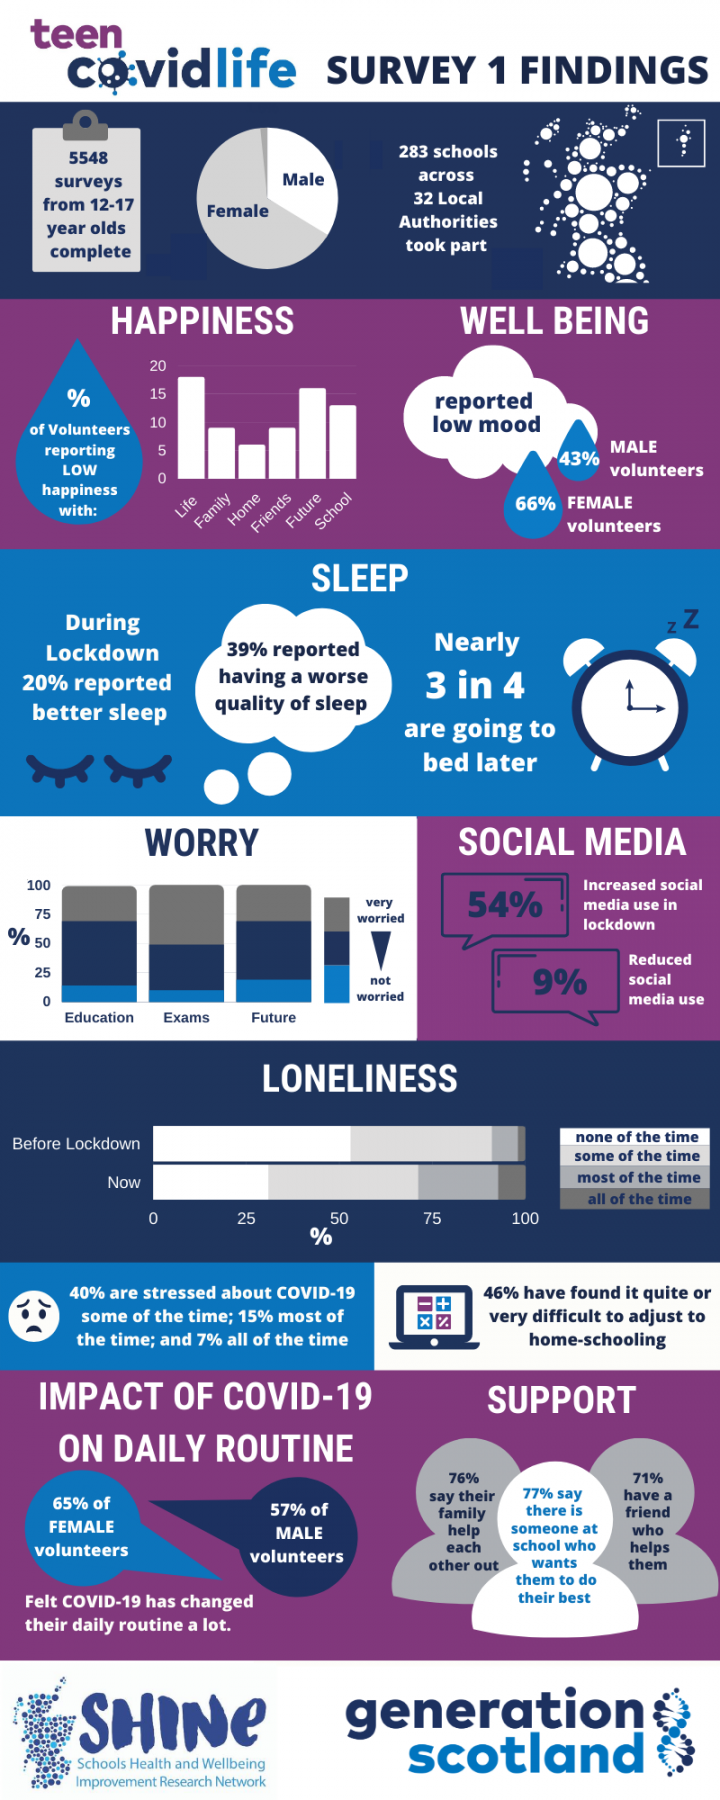 TeenCovidLife survey results: Loneliness in young people increased during lockdown